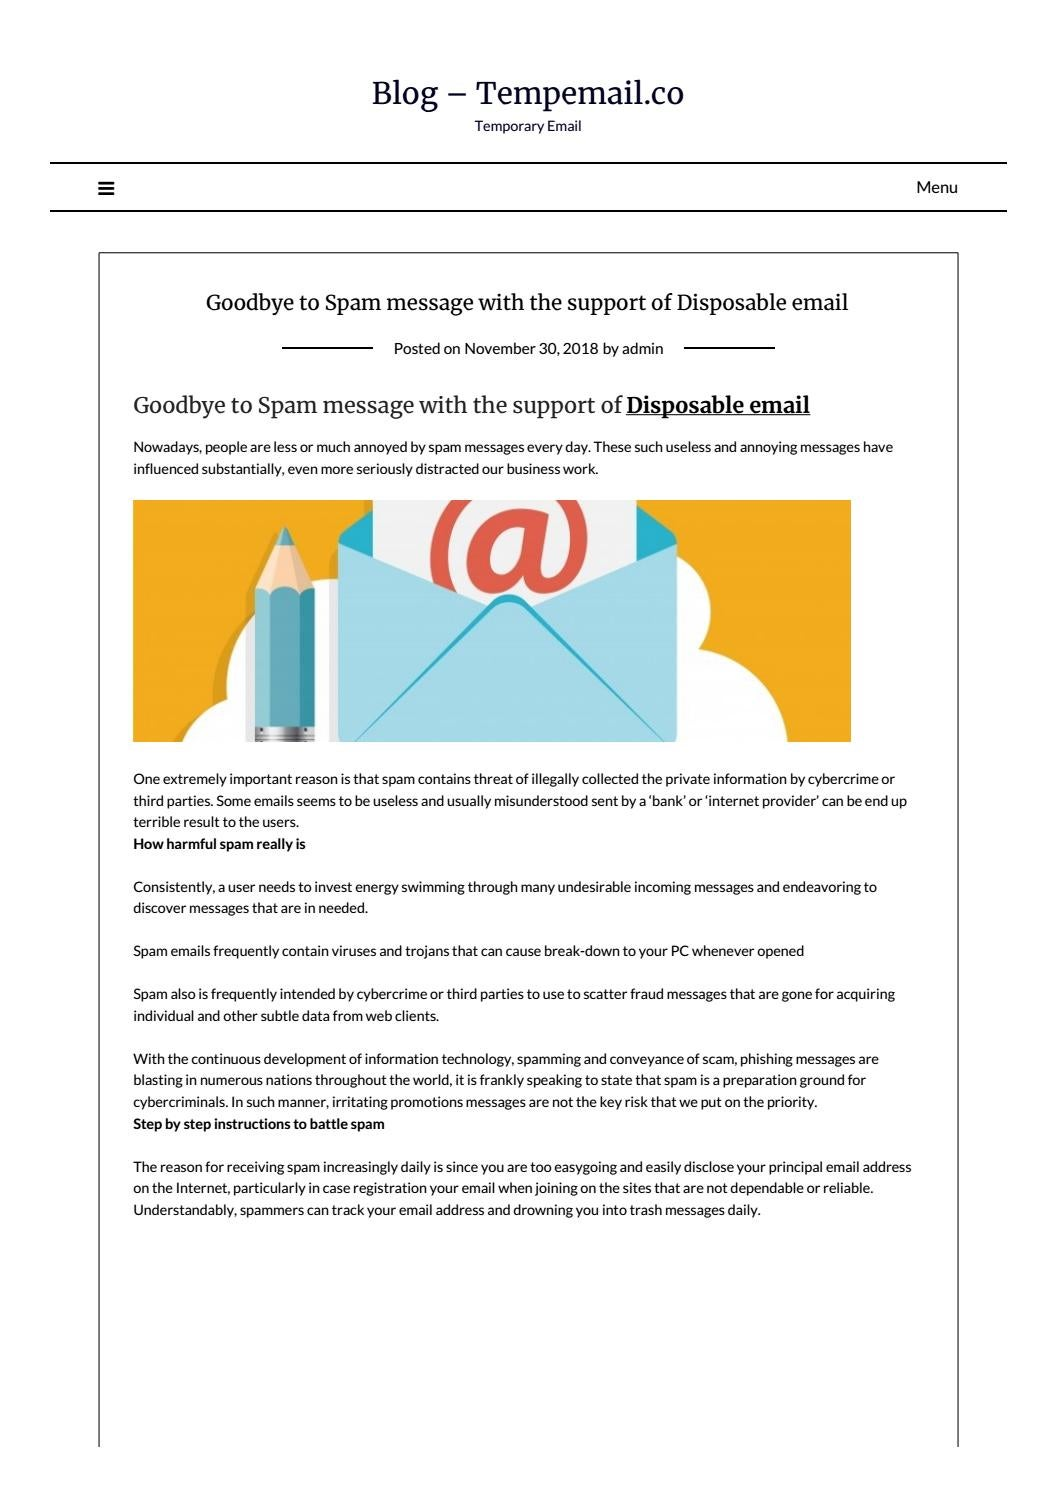 Goodbye to Spam message with the support of Disposable email